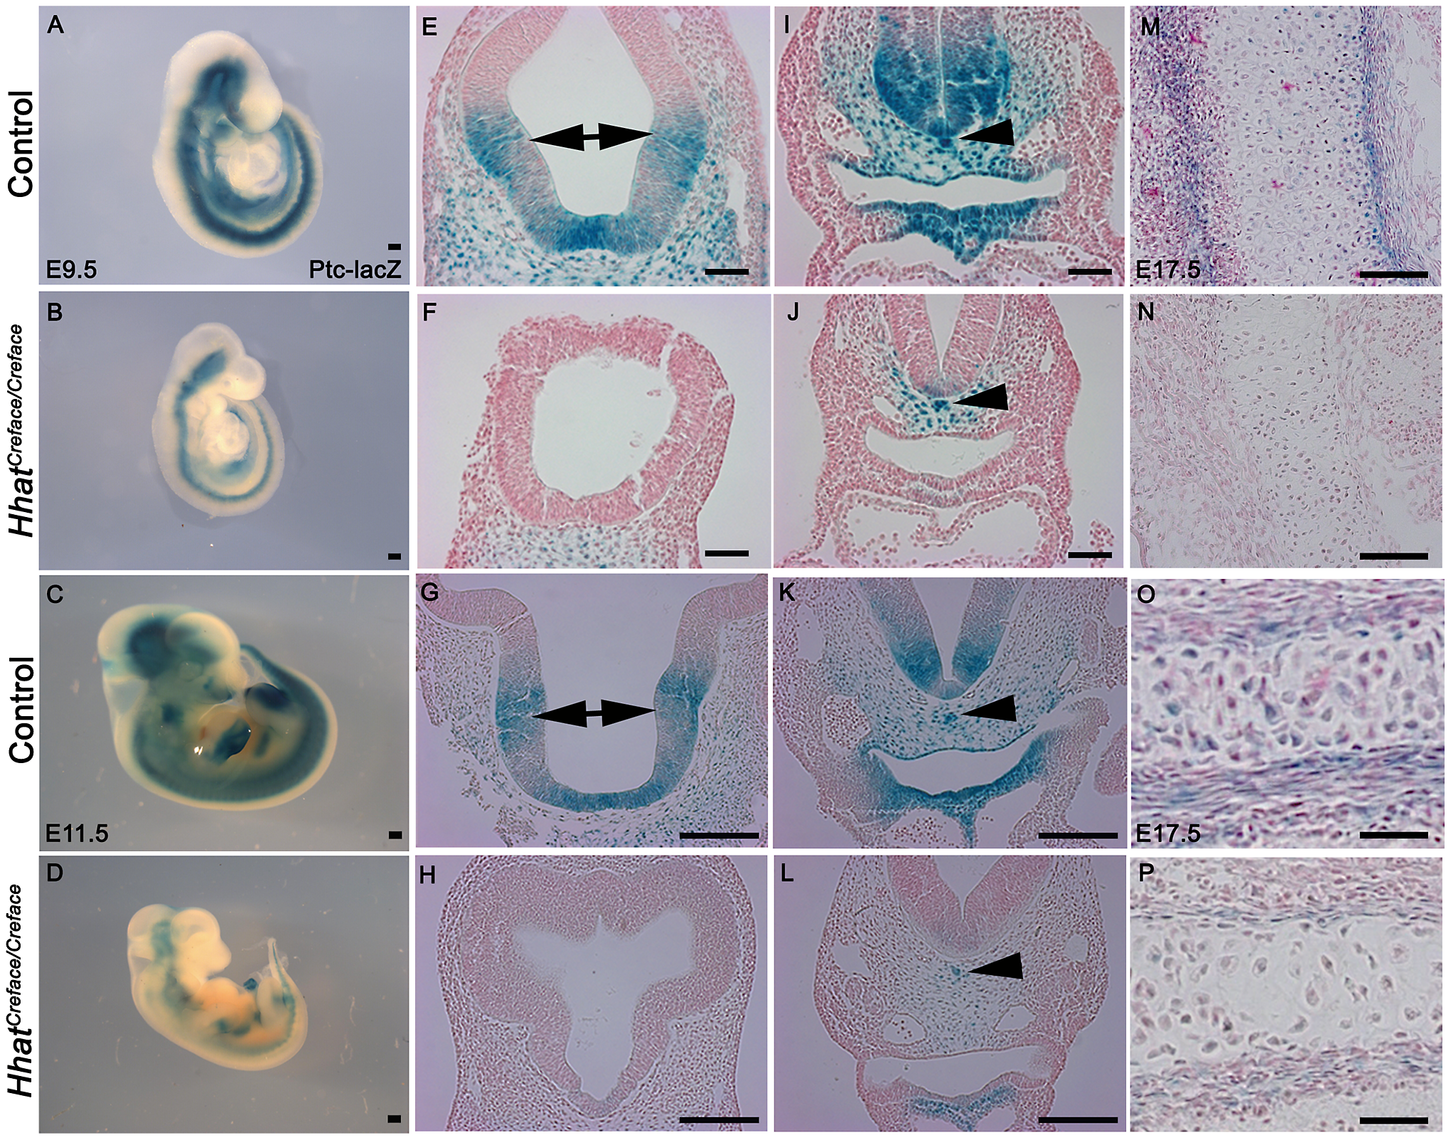 <i>Patched (Ptch1)</i> activation is diminished in <i>Hhat<sup>Creface/Creface</sup></i> embryos.